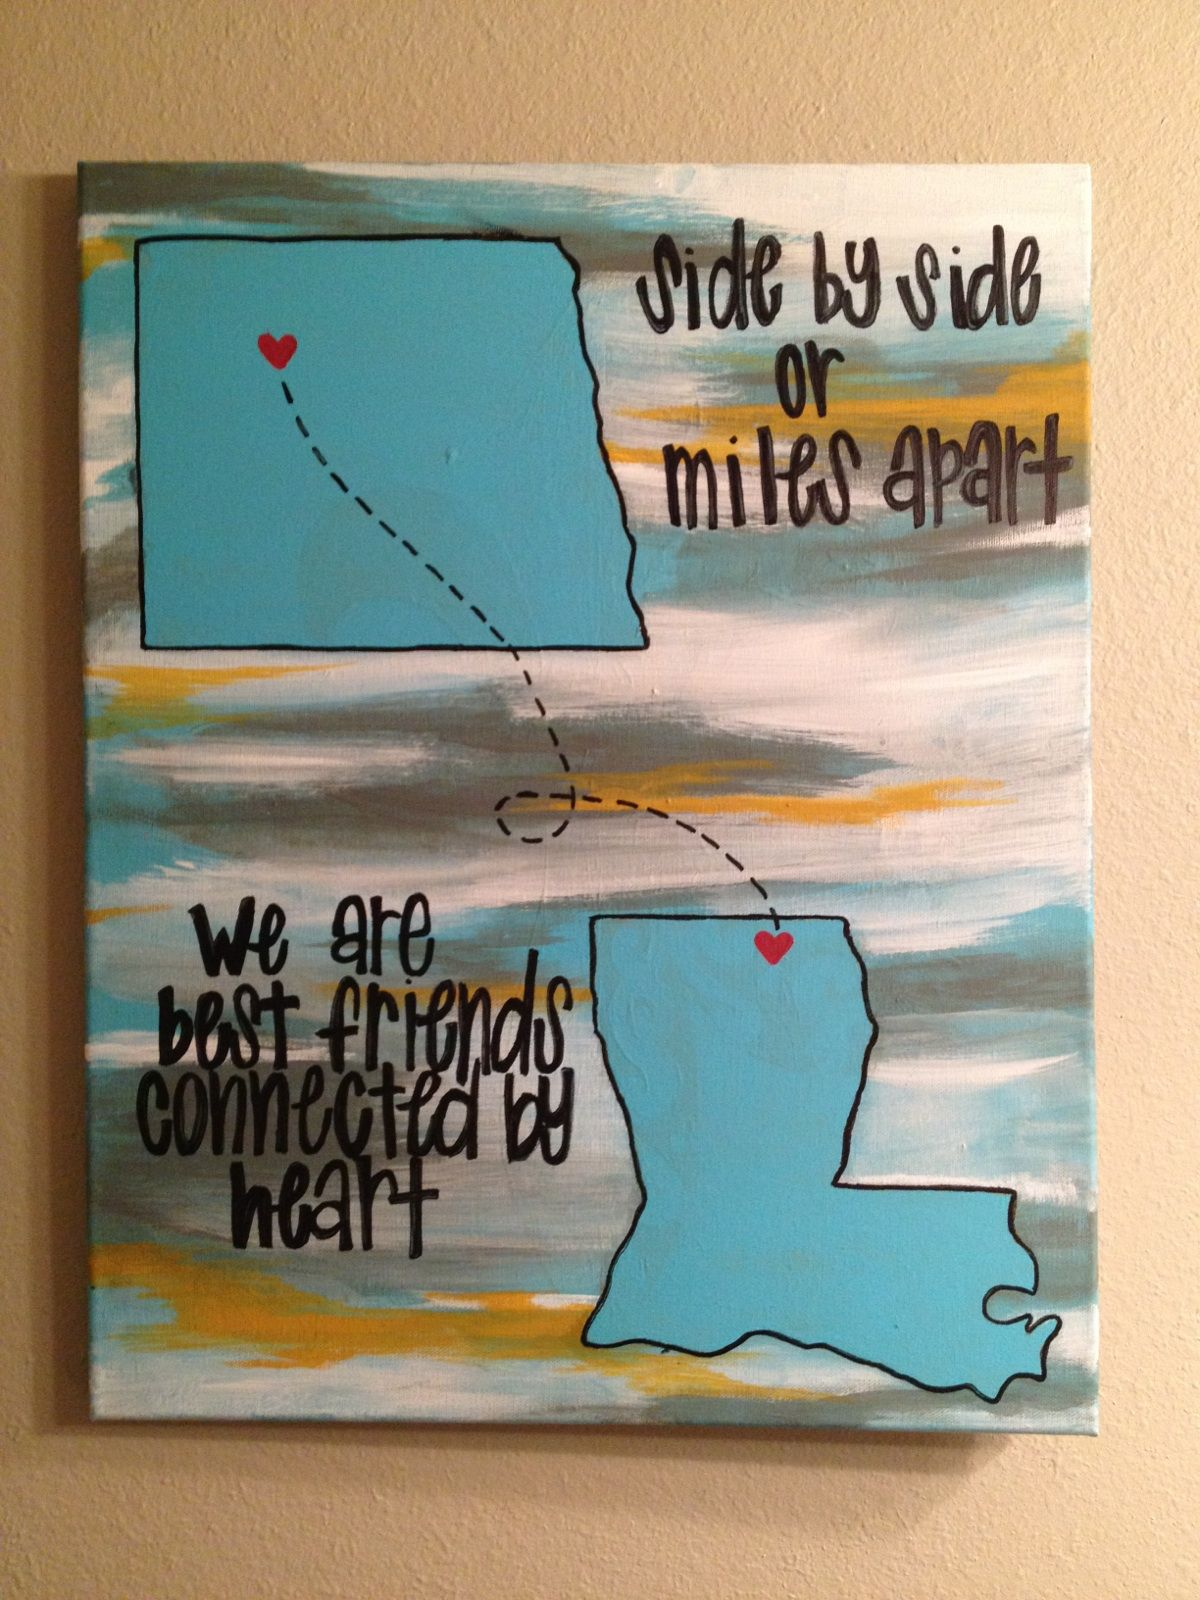 best friend painting side by side or